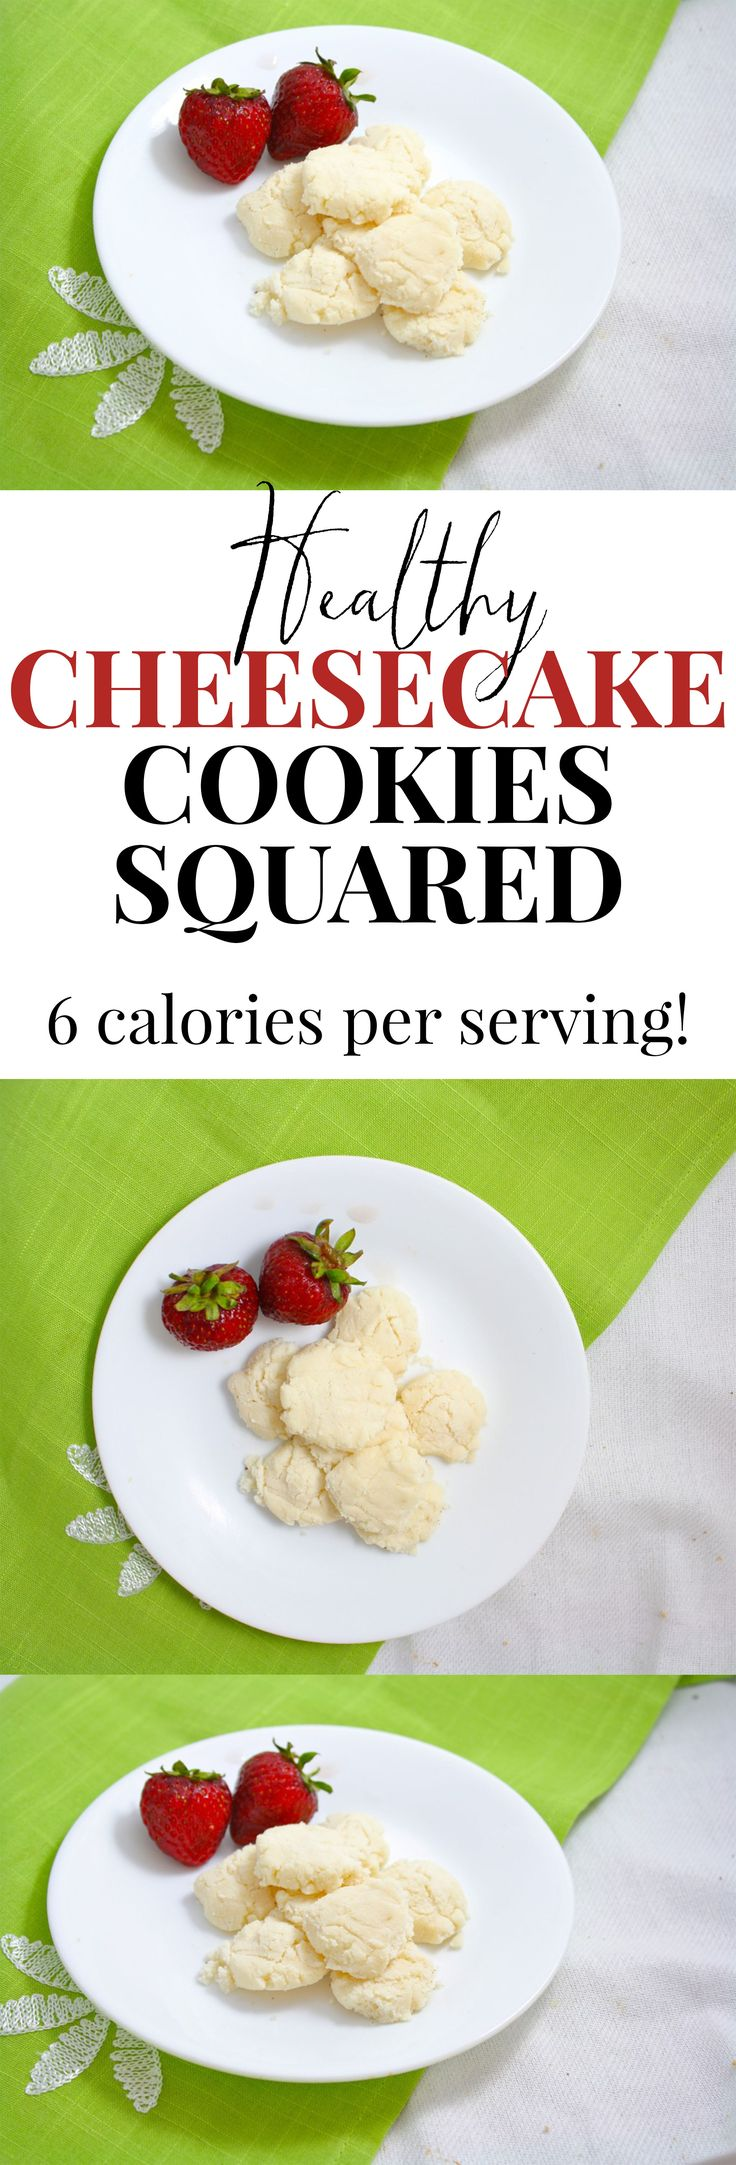 Healthy cheesecake cookies!! Only 6 calories each, vegan, gluten free and can be made in either the microwave or the oven!